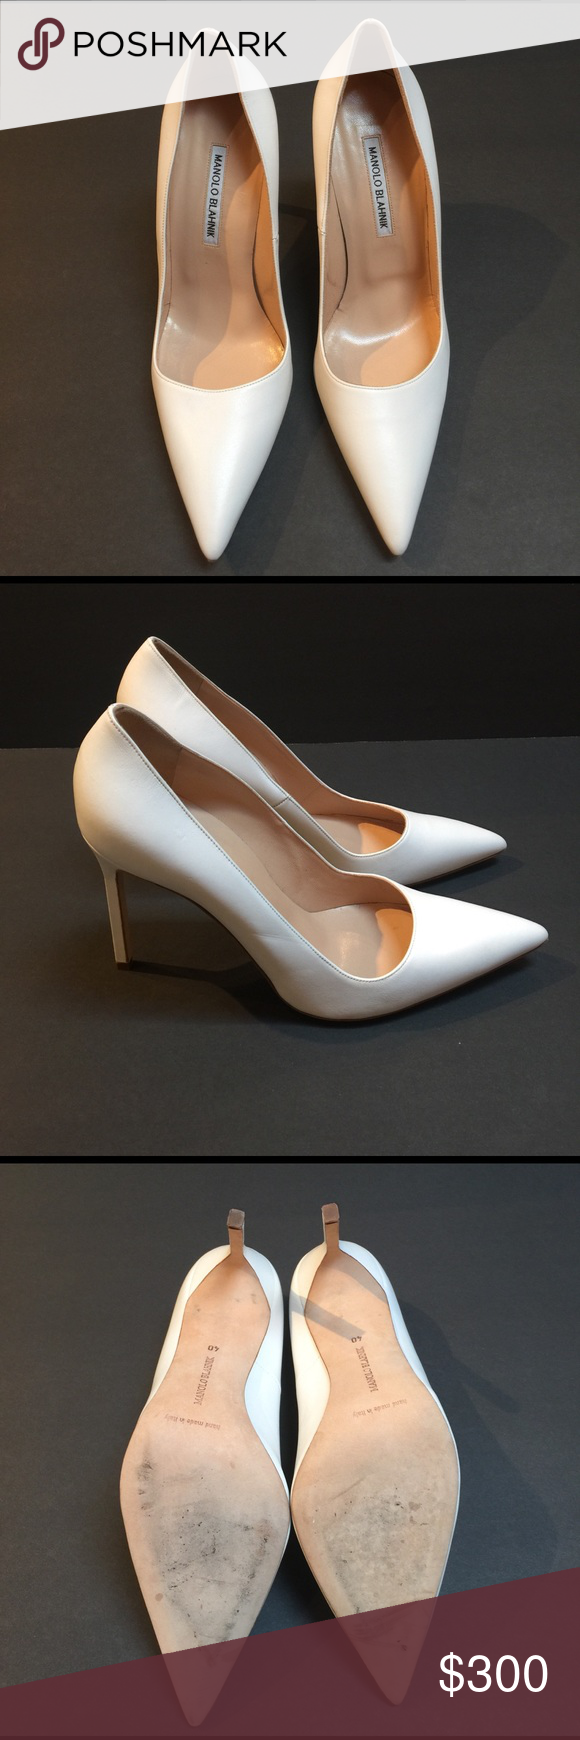 "Manolo Blahnik White Leather BB Pumps Manolo Blahnik white smooth kidskin BB pumps.  Super chic, this is a great classic pump to have for your wardrobe.  Not brand new, has been worn once indoors.  The heel has a flaw, which you can see in the photo.  Otherwise, this is in near new condition.  Approximately 4"" heels.  Size 40 (US 10) but runs small, fits like a 39 (US 9).  Includes original dust bag, no box.  Still original price in stores. Manolo Blahnik Shoes Heels"